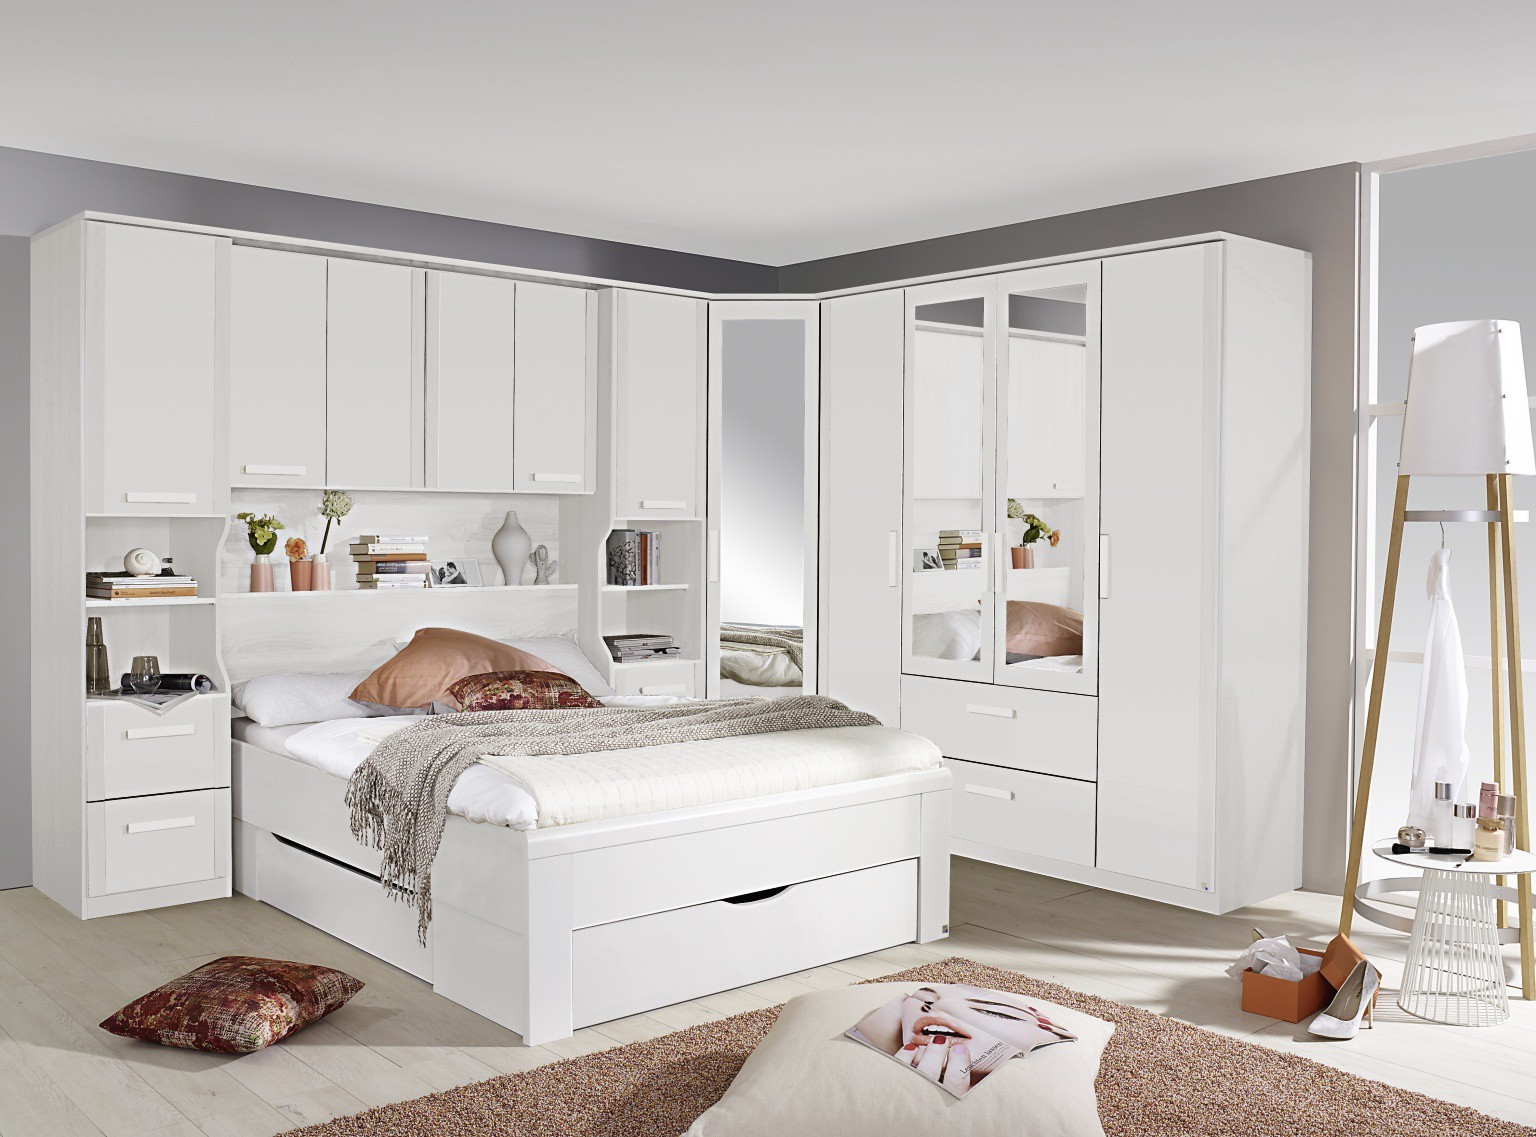 Uncategorized Pictures Over Bed white overbed wardrobe systems fitted bedroom furniture